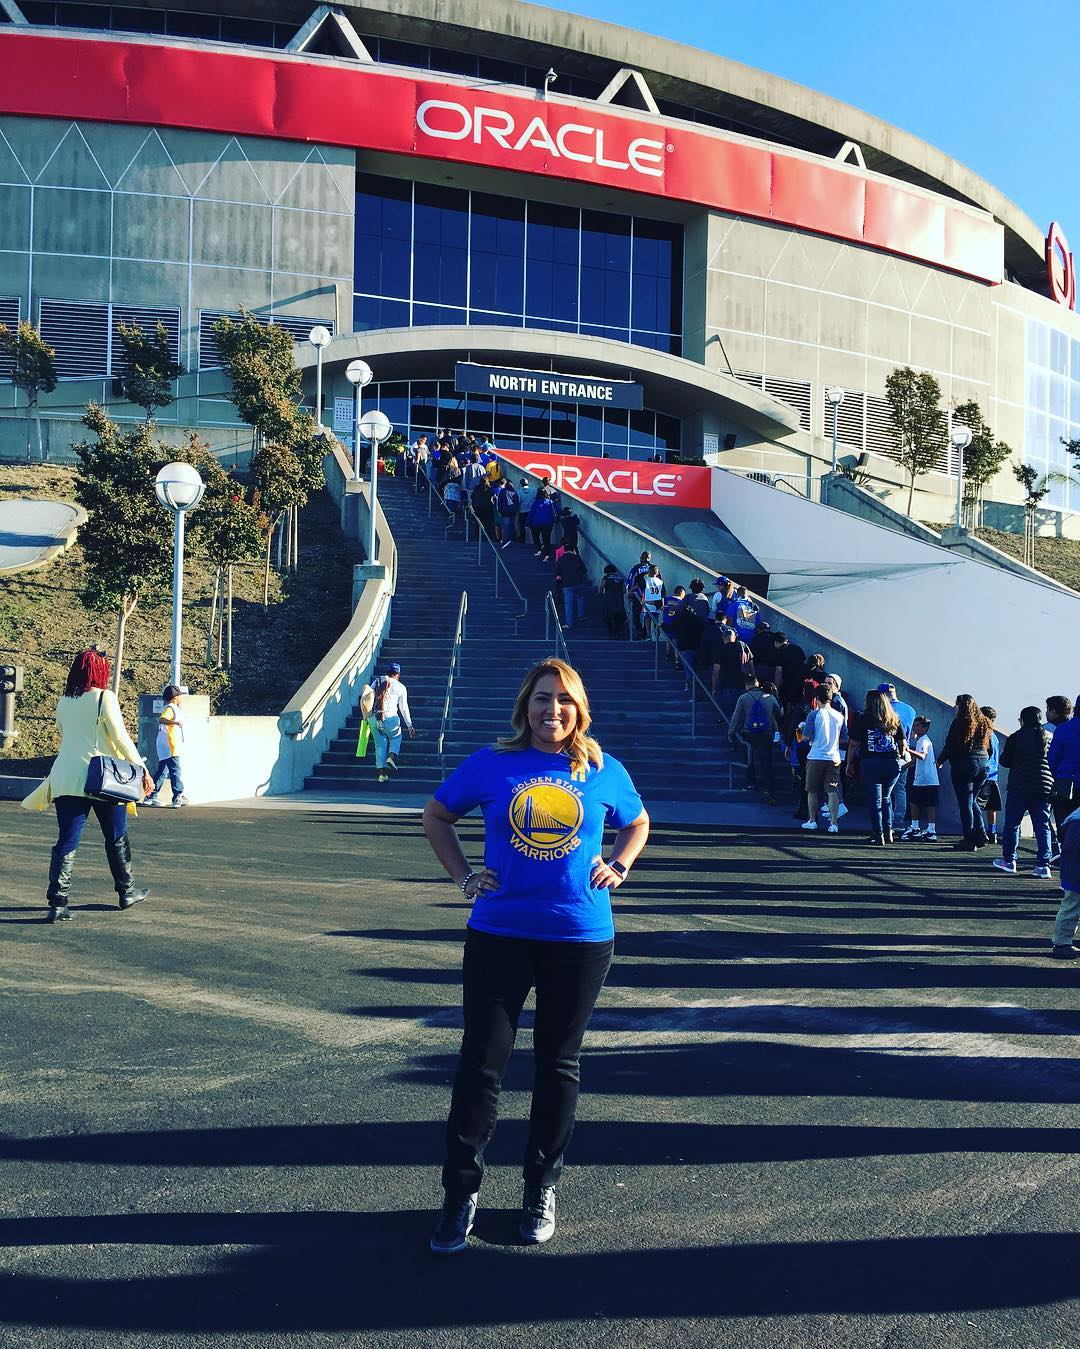 "<div class=""meta image-caption""><div class=""origin-logo origin-image none""><span>none</span></div><span class=""caption-text"">Warriors fans are showing their Golden State pride by sending their photos to ABC7 with #DubsOn7. Go Warriors! (@pinkpanthergolf/Instagram)</span></div>"